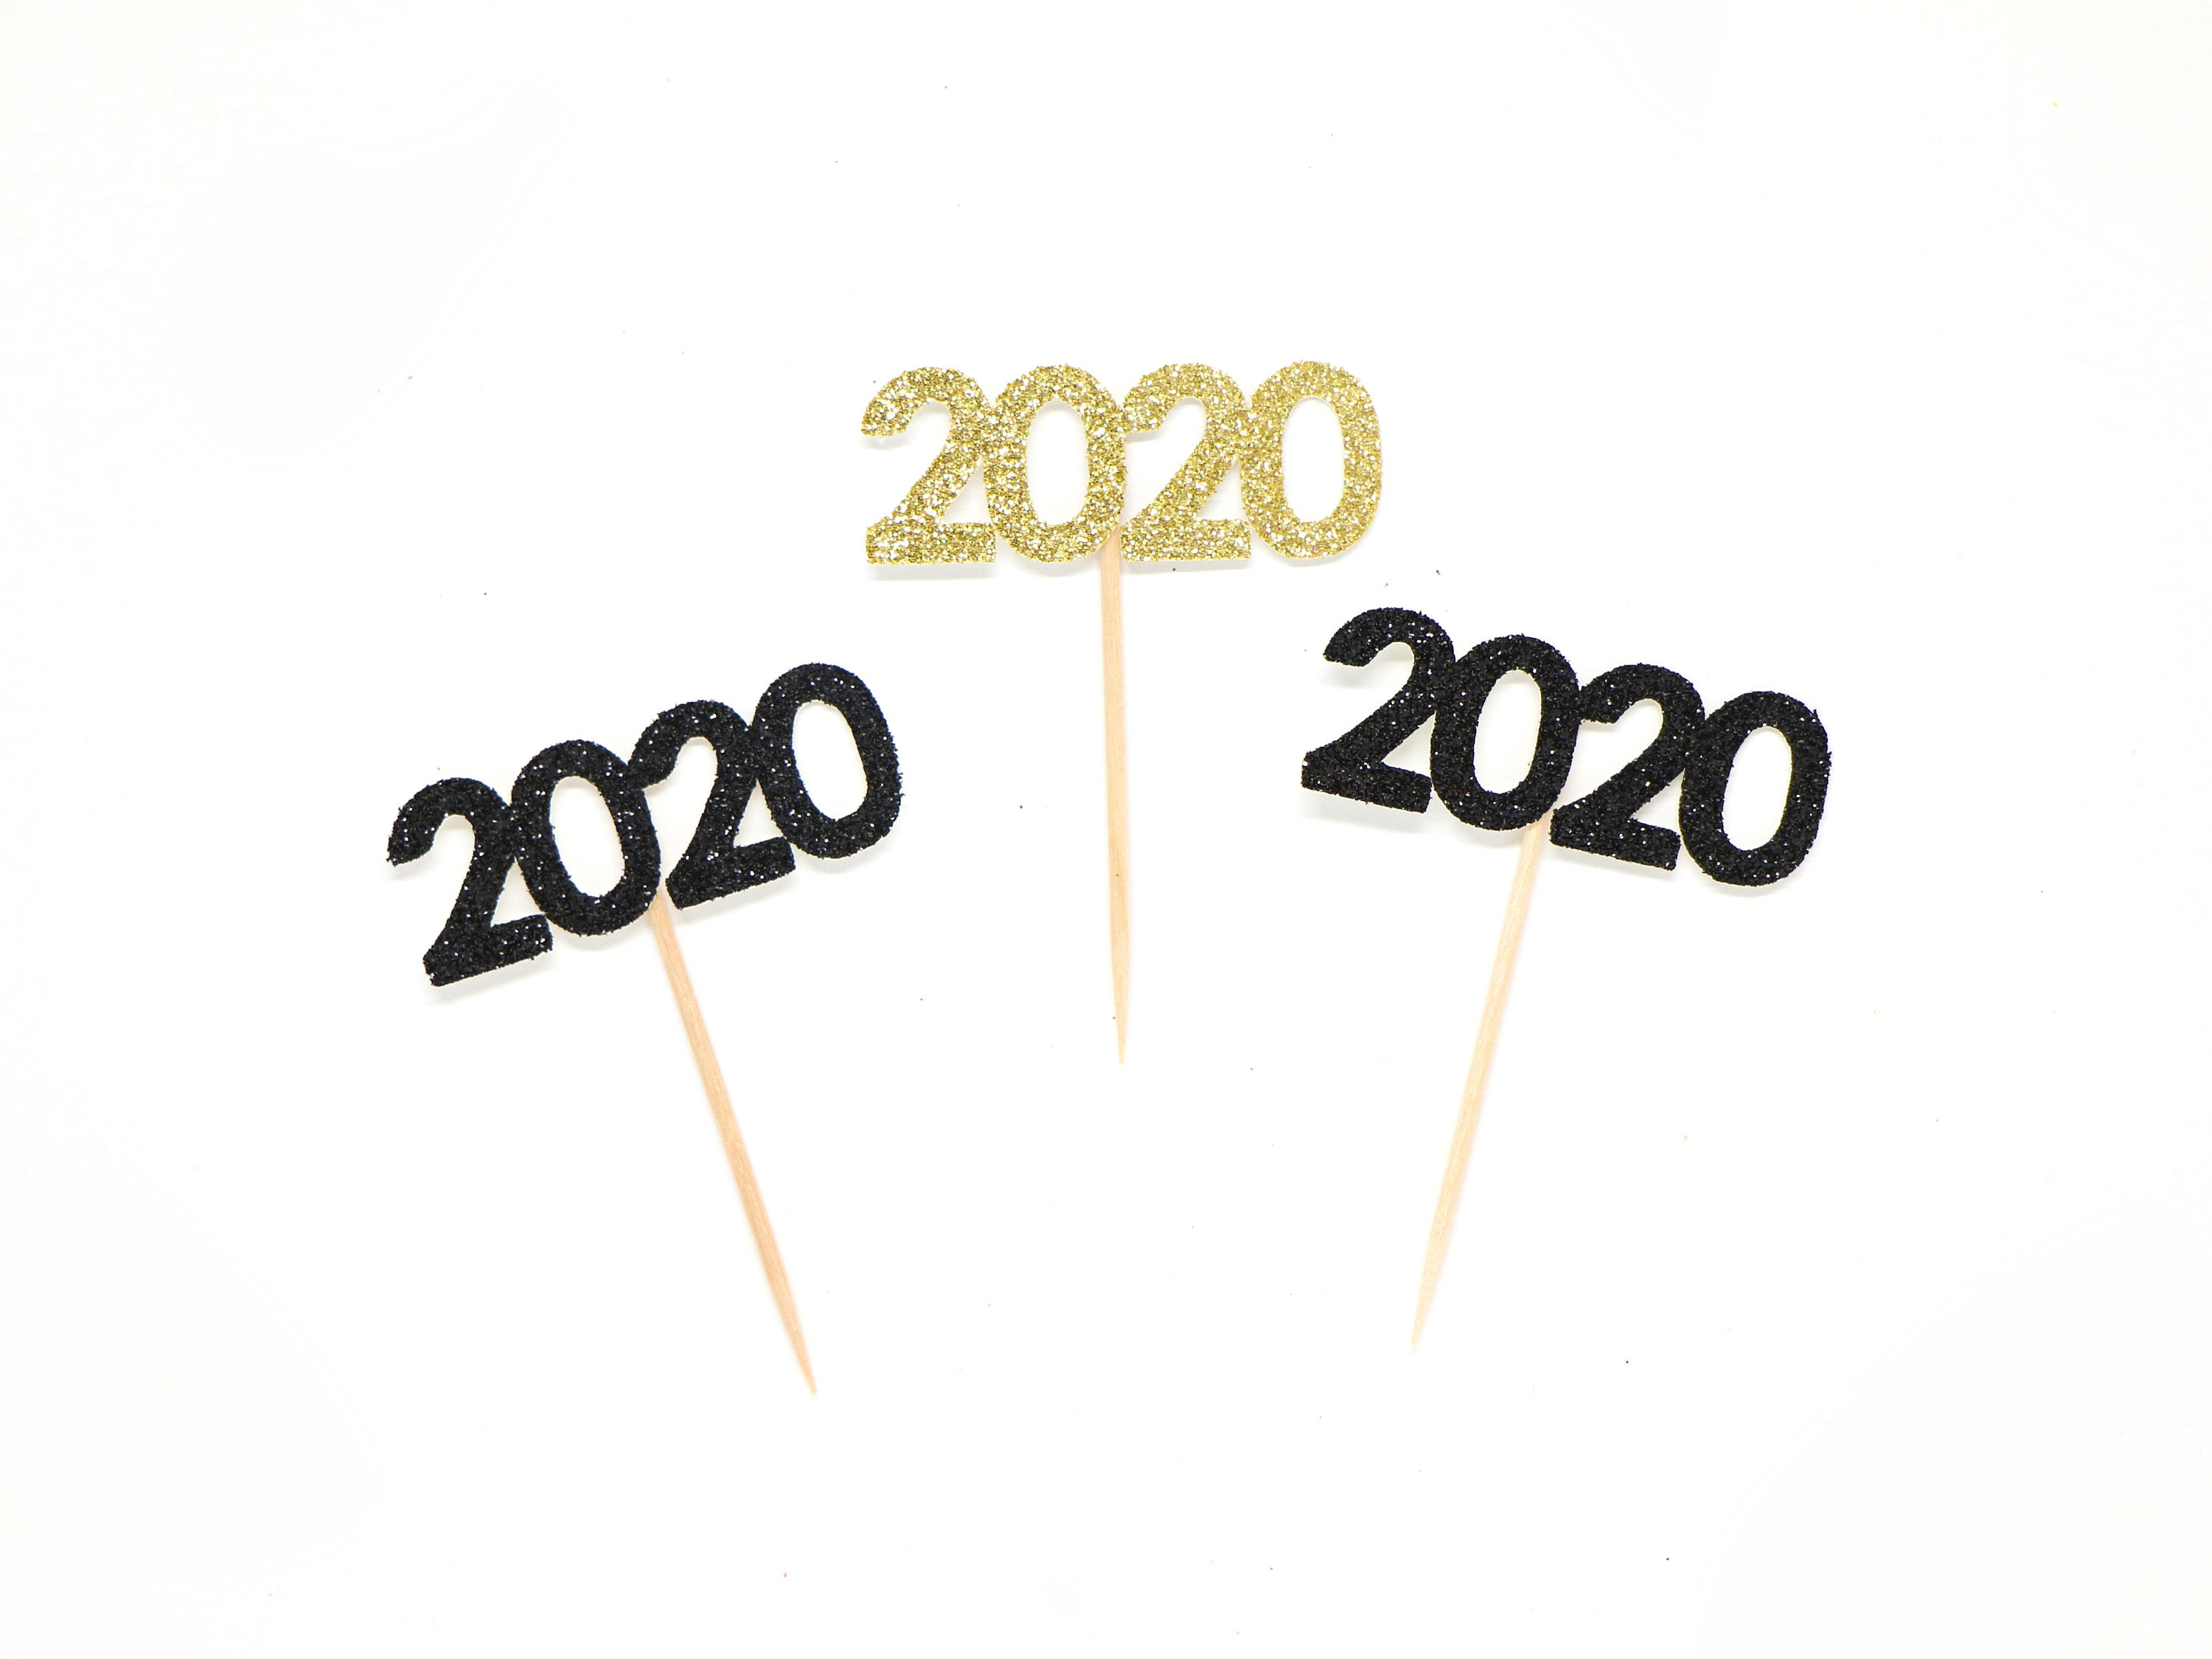 Happy Graduation 2020.2020 Cupcake Toppers Glitter Graduation Party Decor